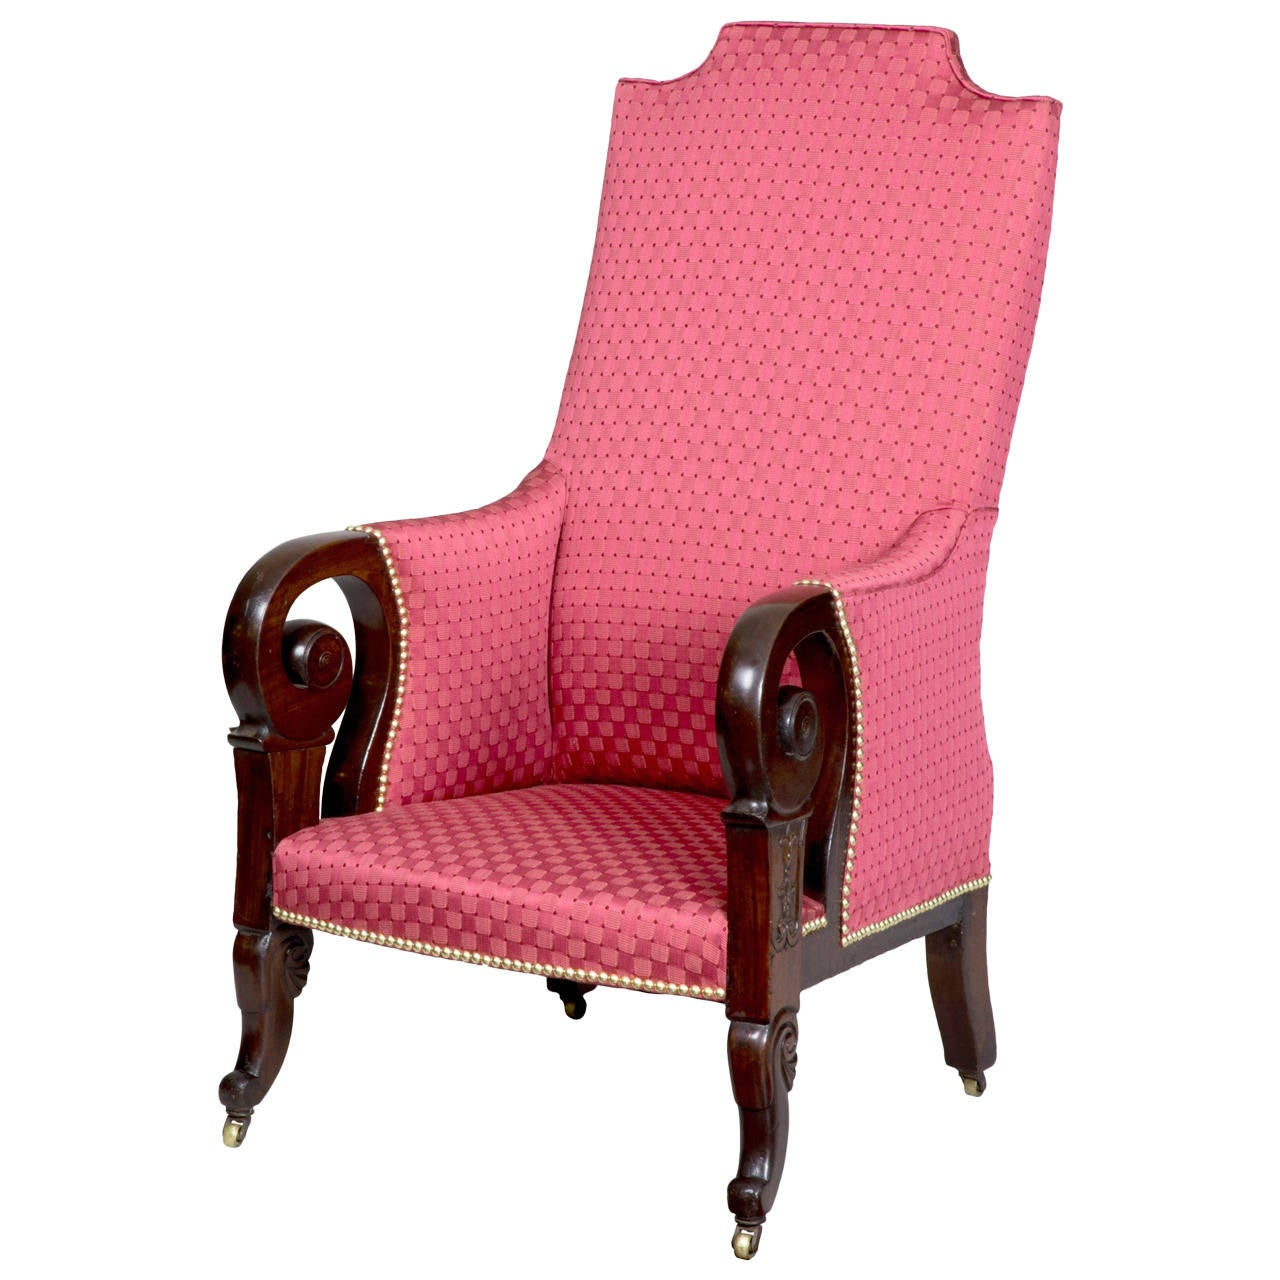 Rare Carved Mahogany Upholstered Classical Armchair, Possibly Southern For Sale